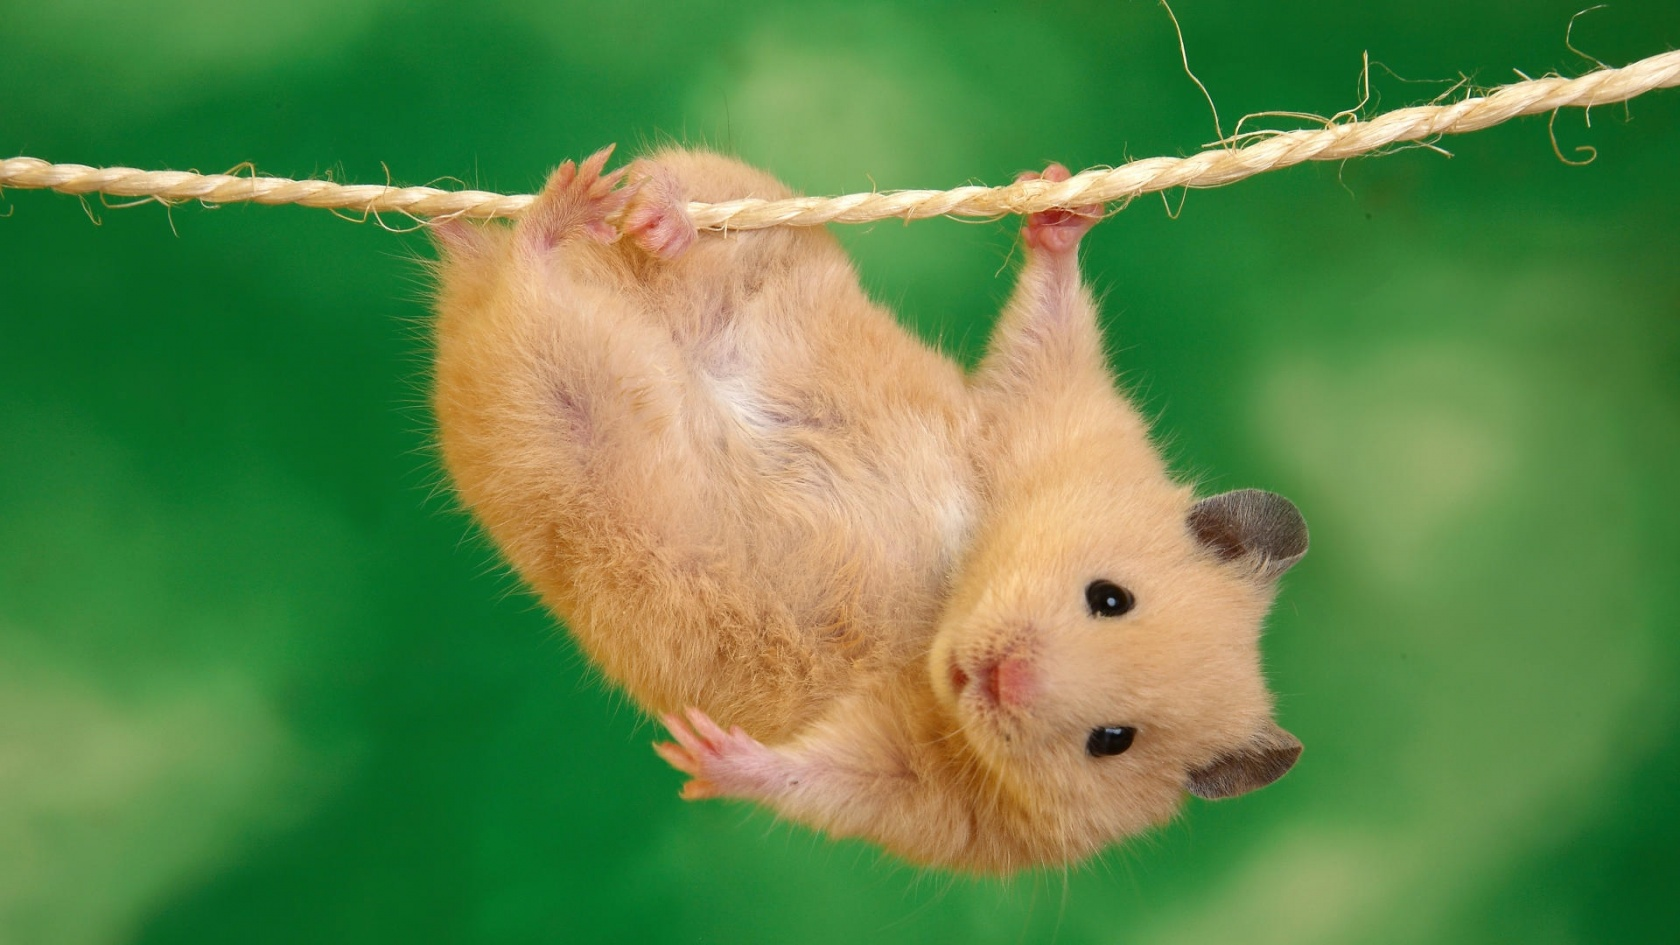 1680x1050 Hanging hamster desktop wallpapers and stock photos